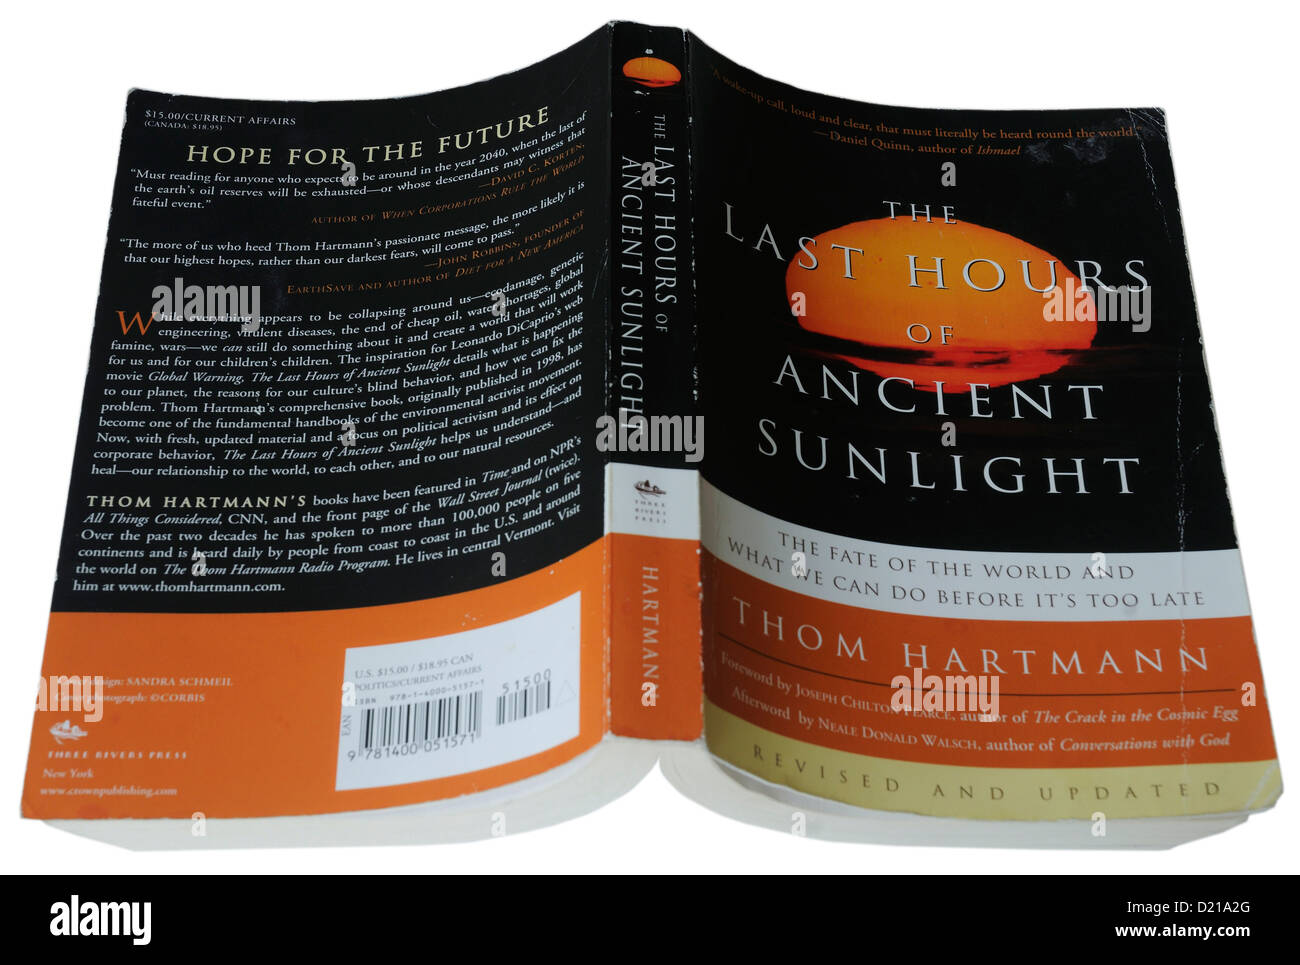 The Last Hours of Ancient Sunlight by Thom Hartmann - Stock Image